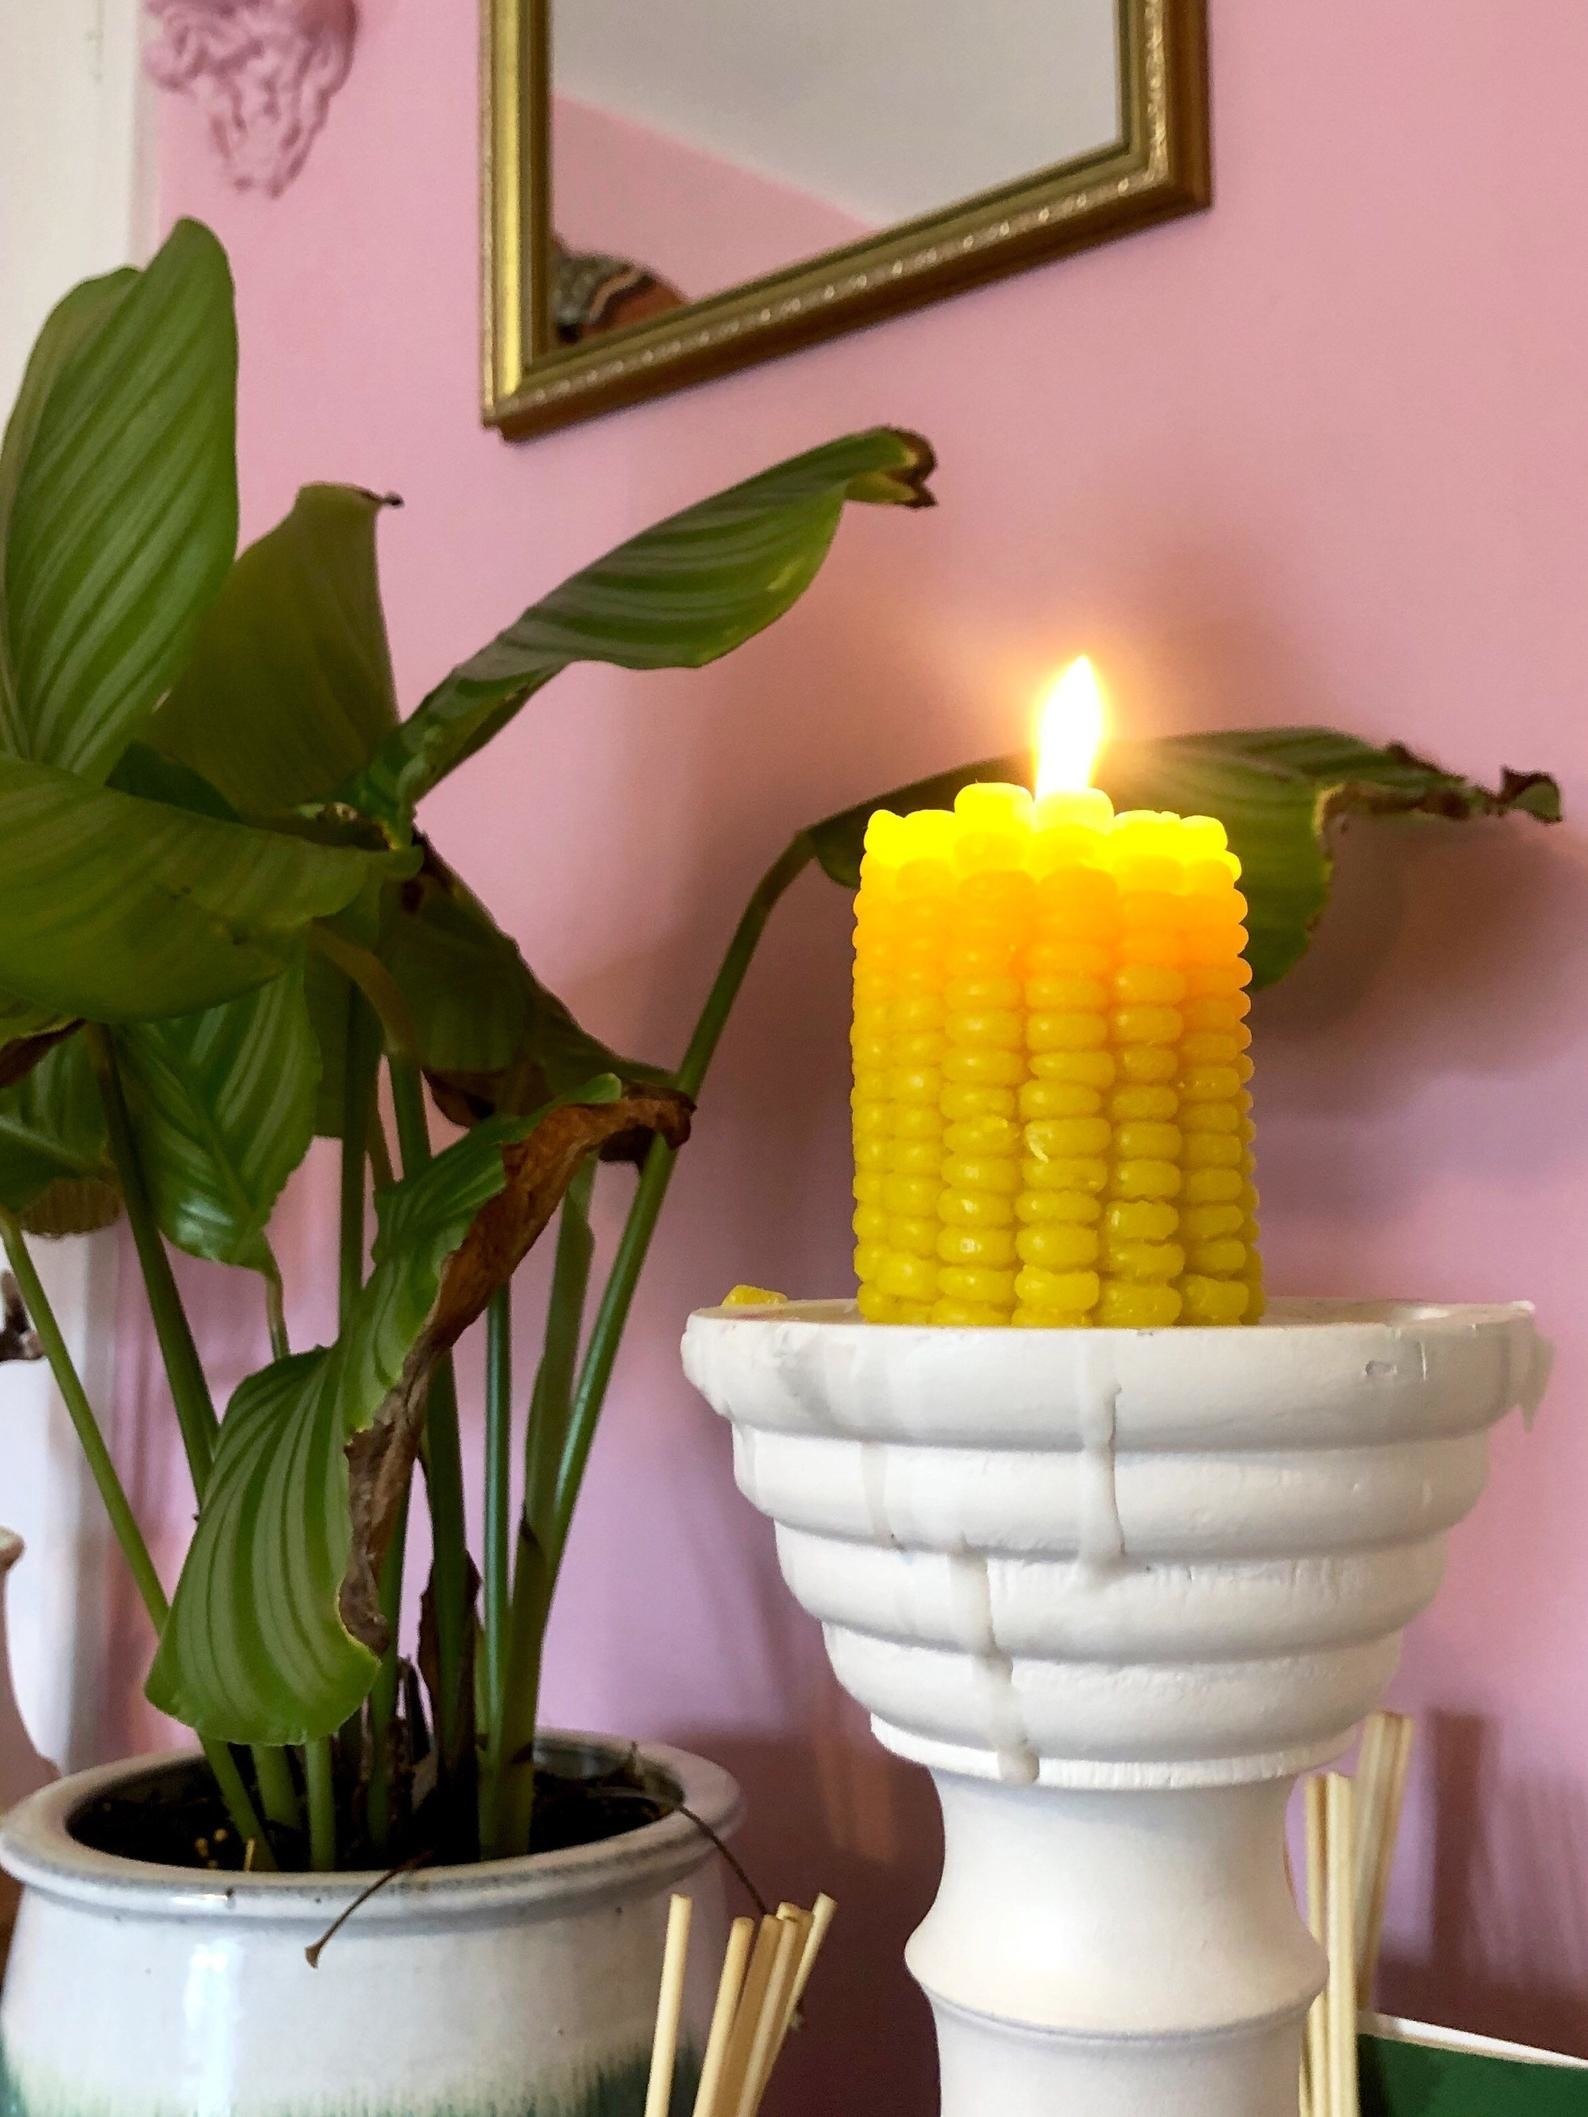 The lit corn candle